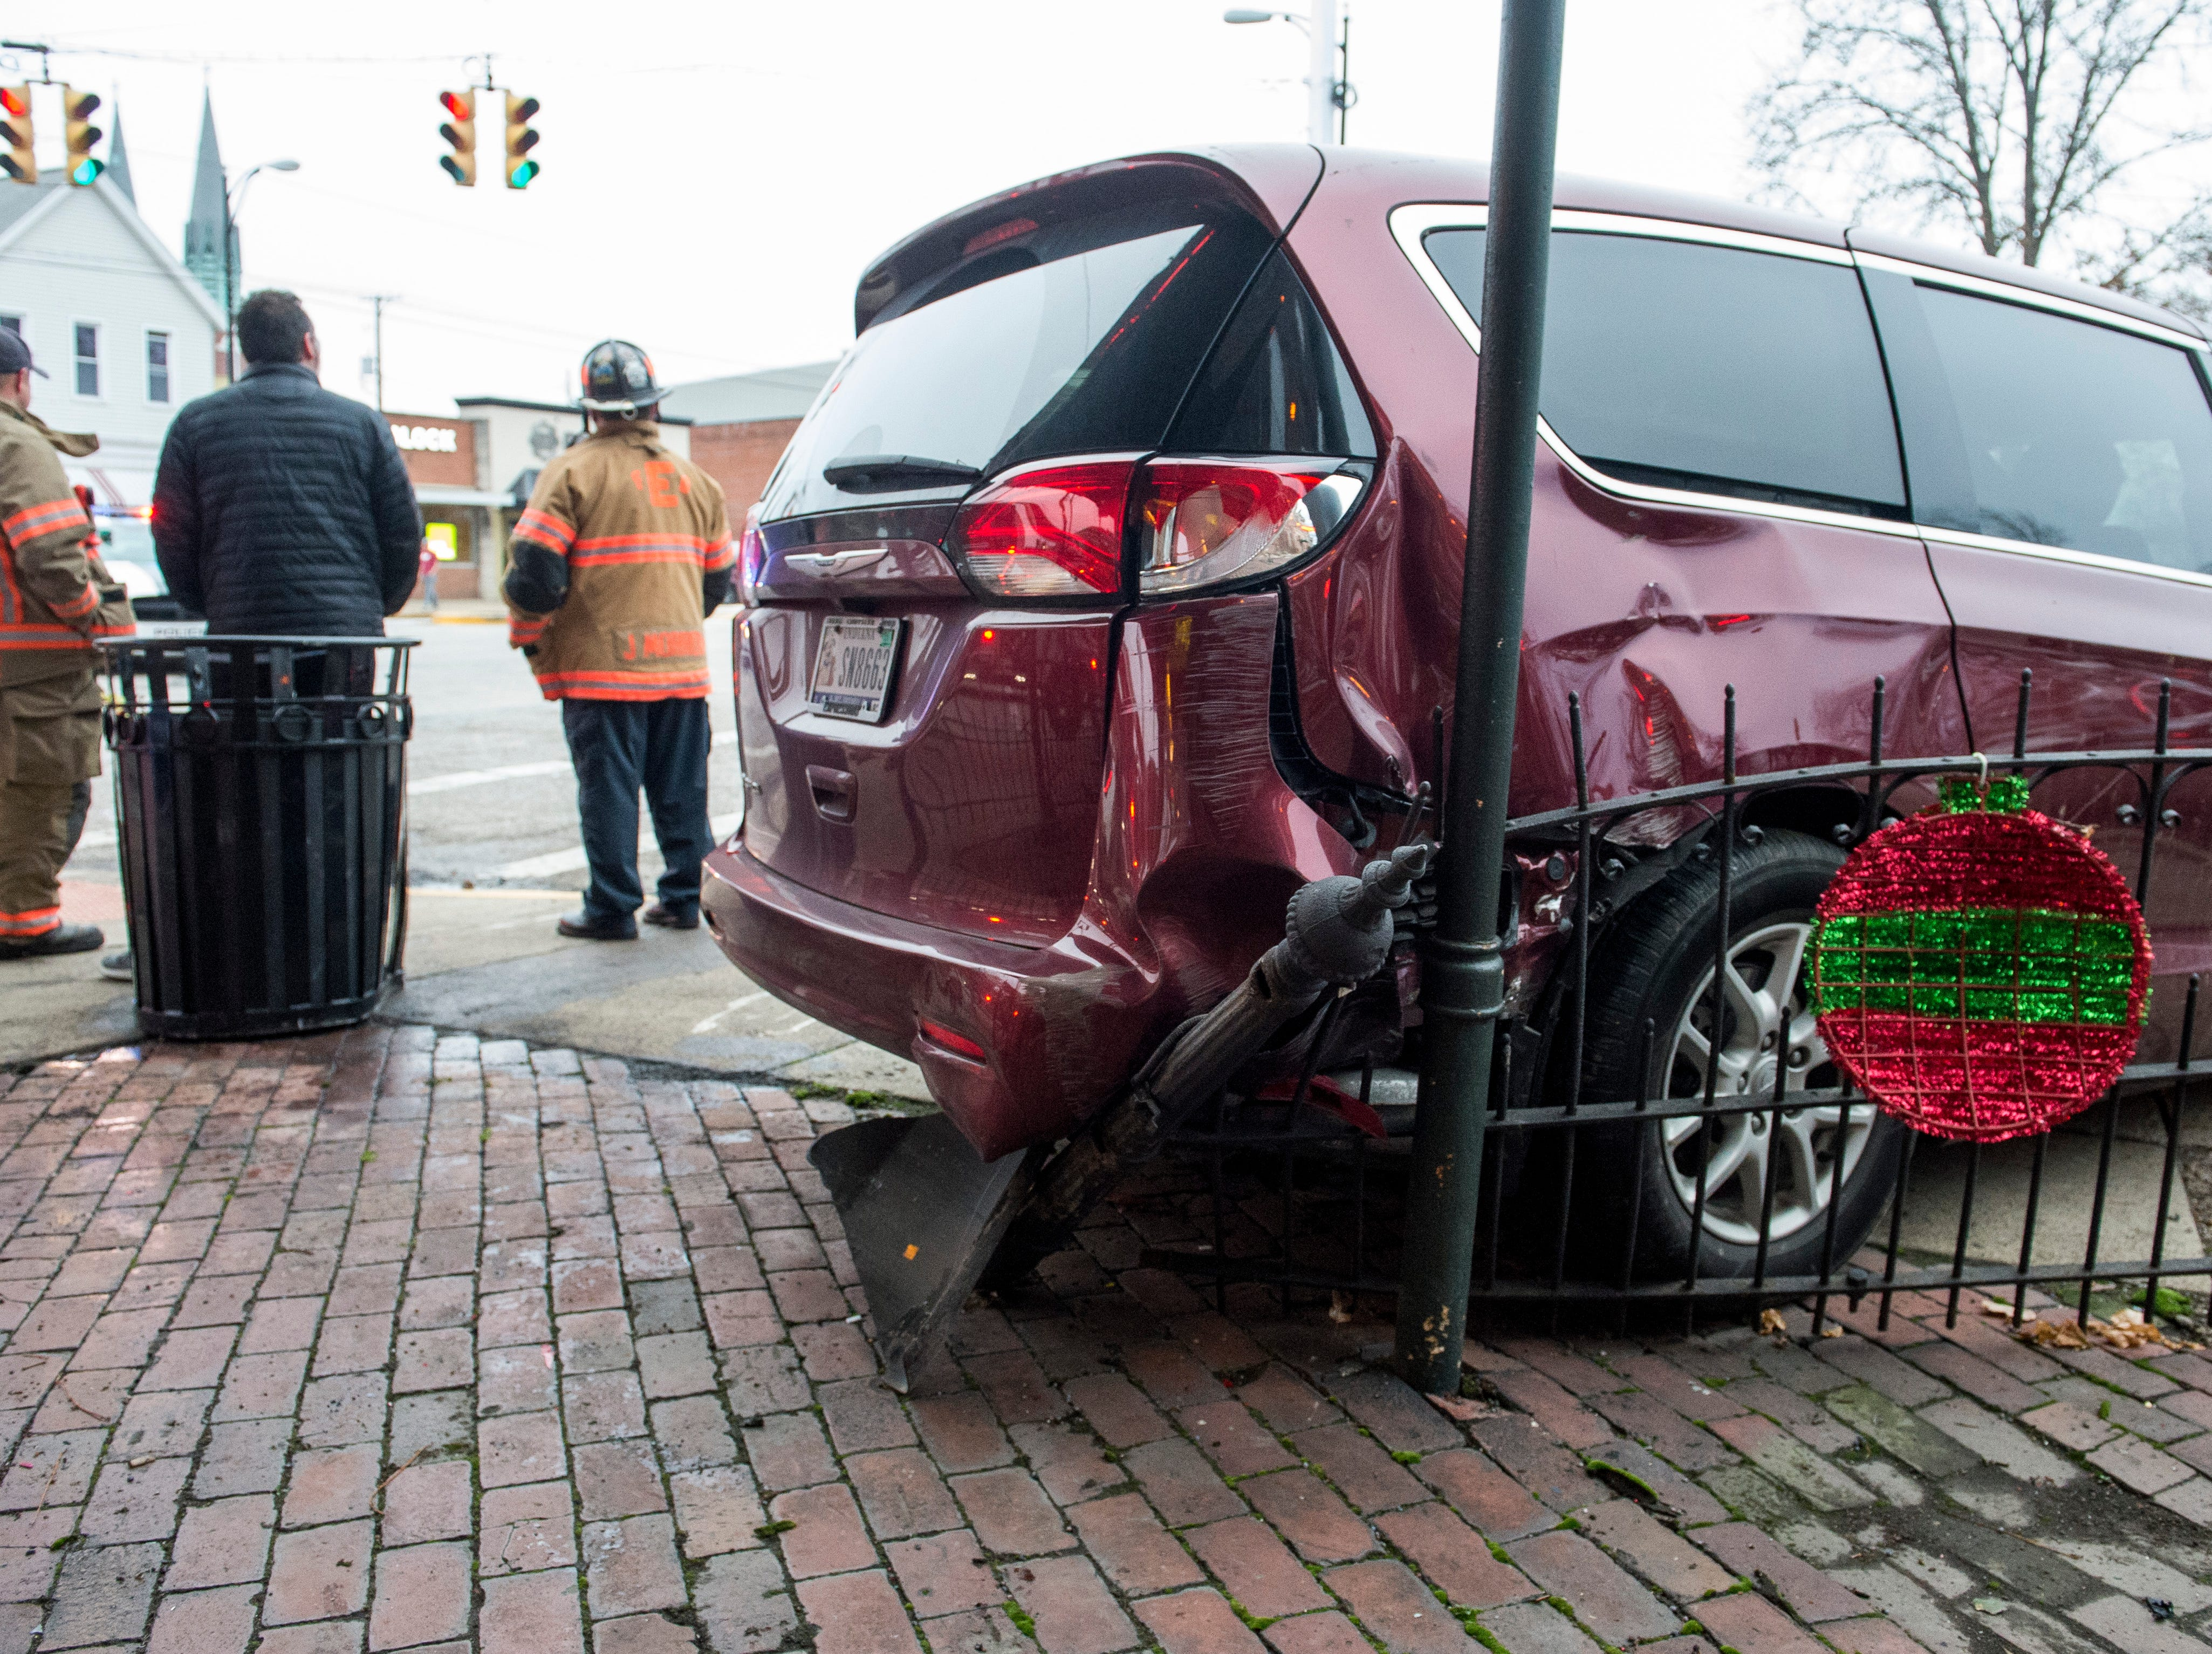 Evansville Police say a truck traveling west on Franklin Street lost a tire and veered onto the sidewalk in front of the library, colliding with an SUV trying to turn south on 10th Avenue. The SUV hit a parked minivan causing all three vehicles to hit the fence and awning of the Gerst Haus Friday, Dec. 21, 2018.